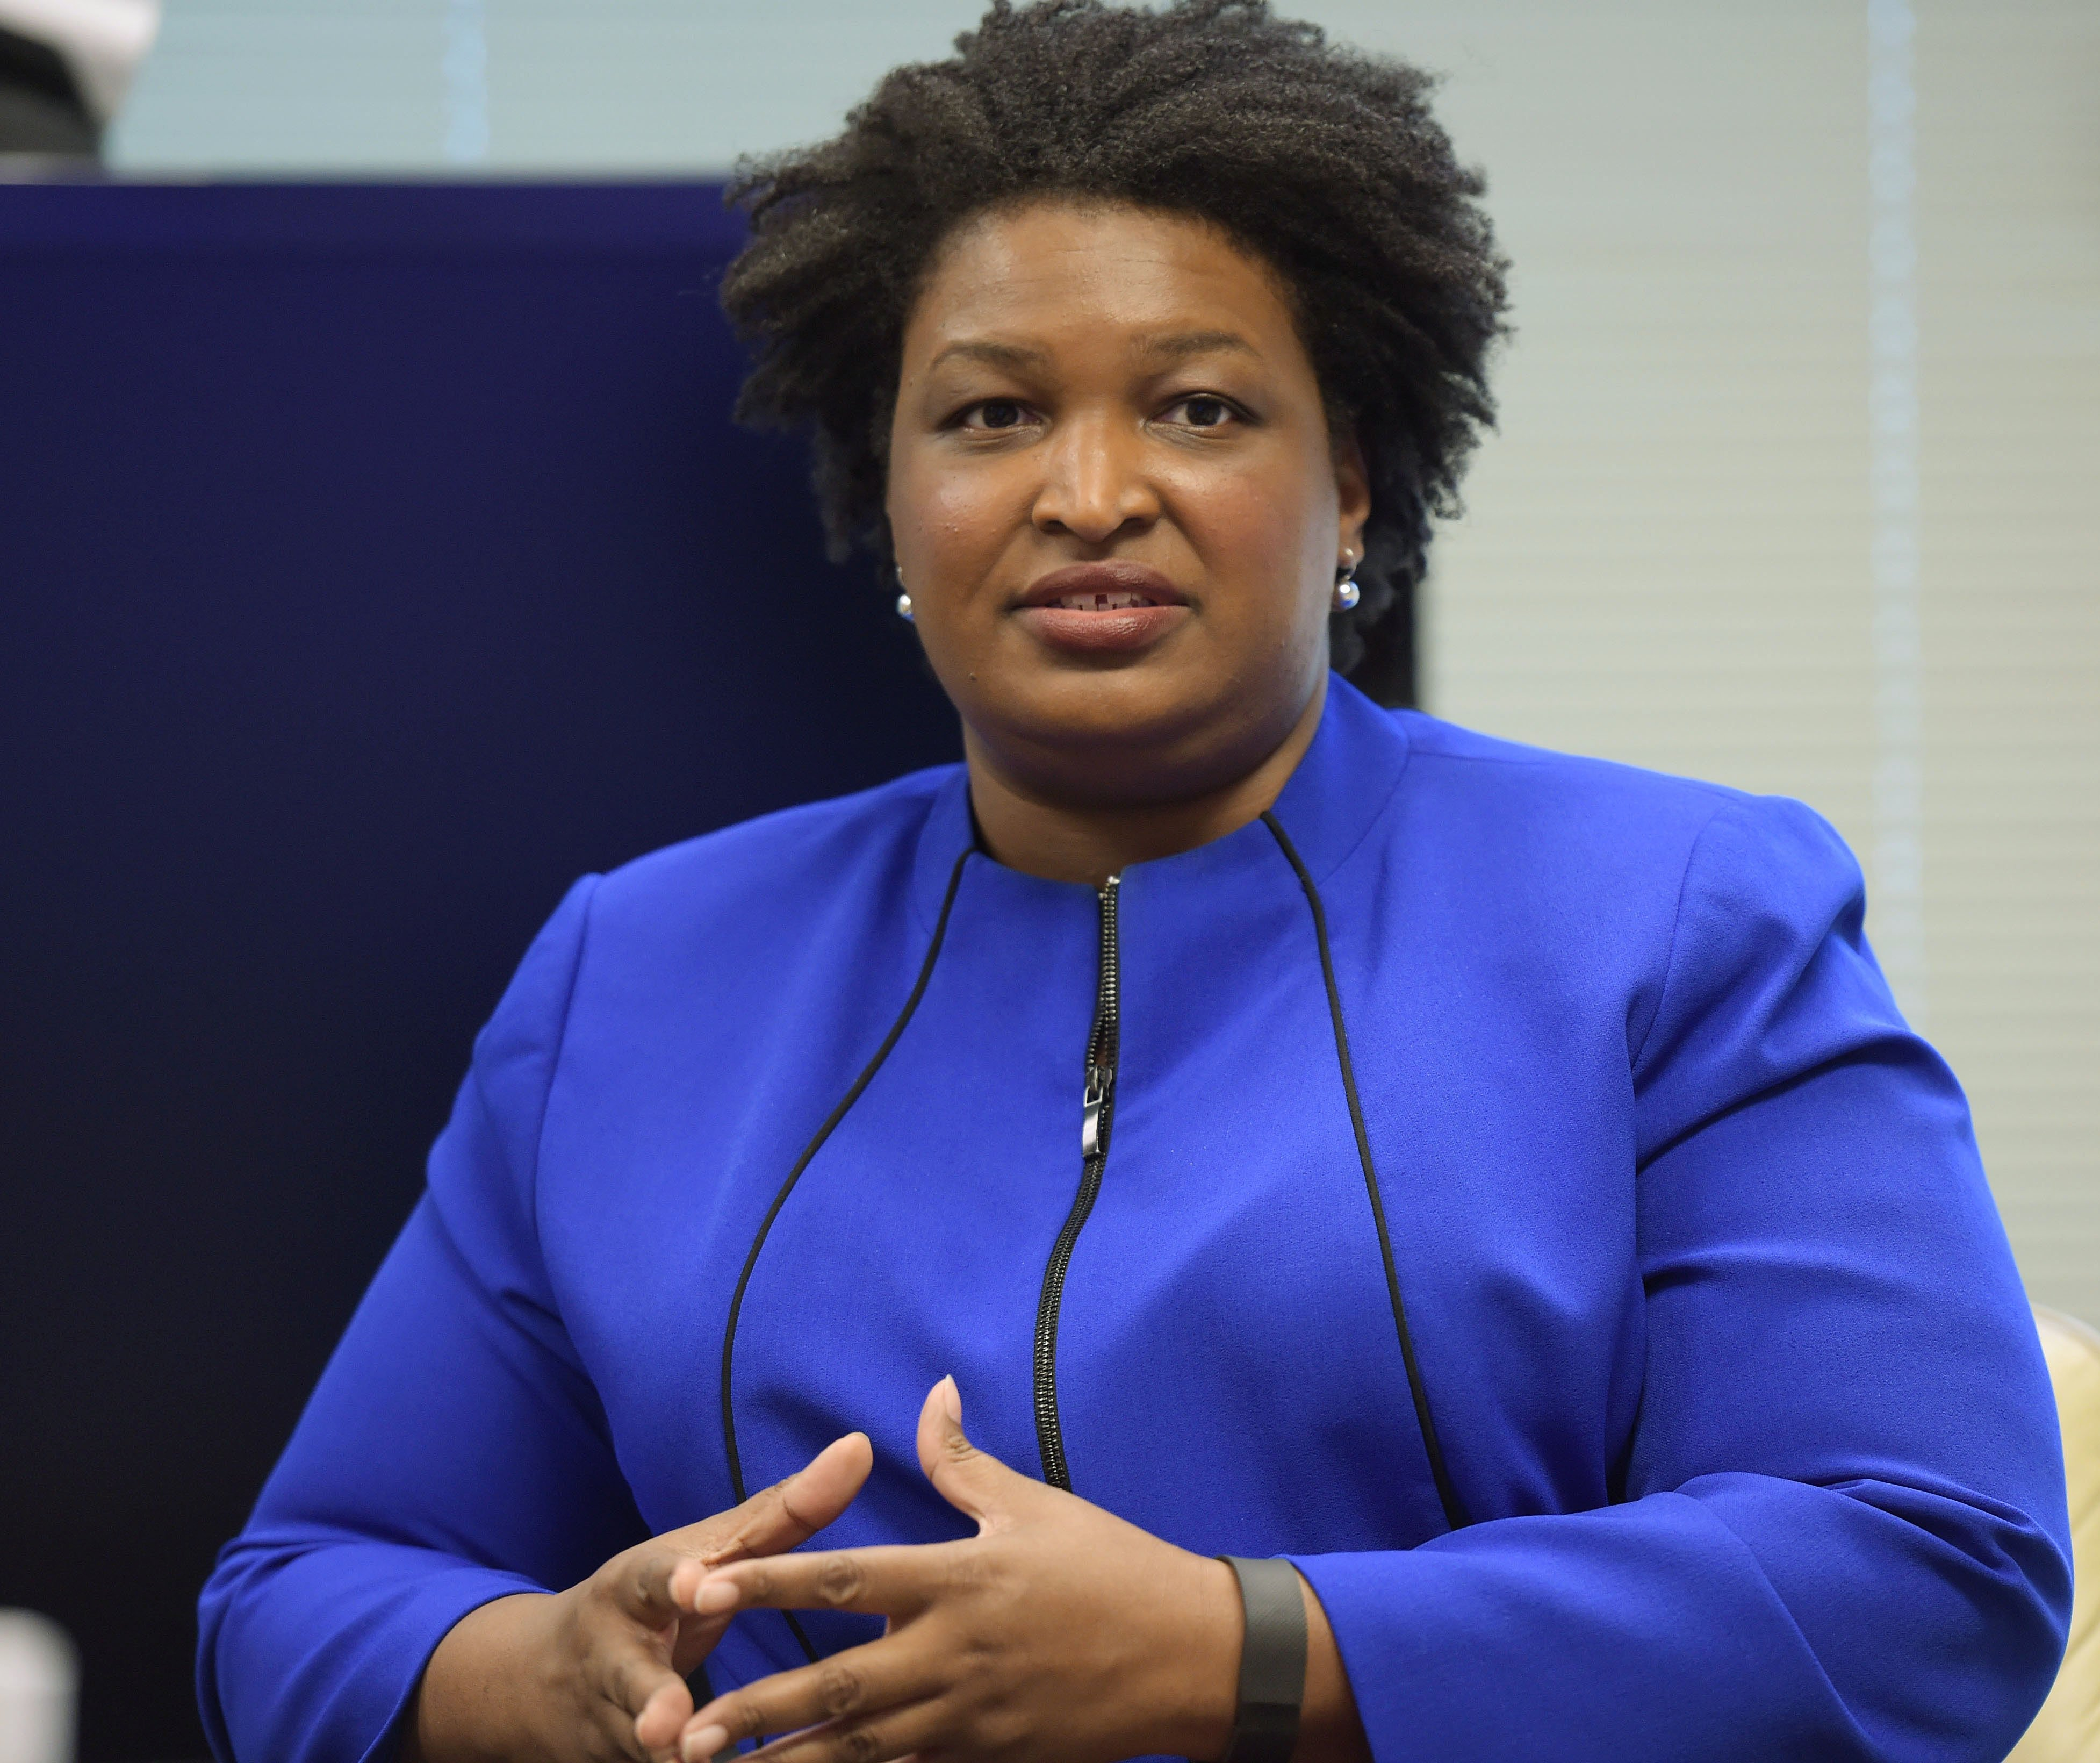 Stacey Abrams is running for governor because she has a vision for Georgia where equality fosters prosperity amp everyone has the chance to thrive Vote 116